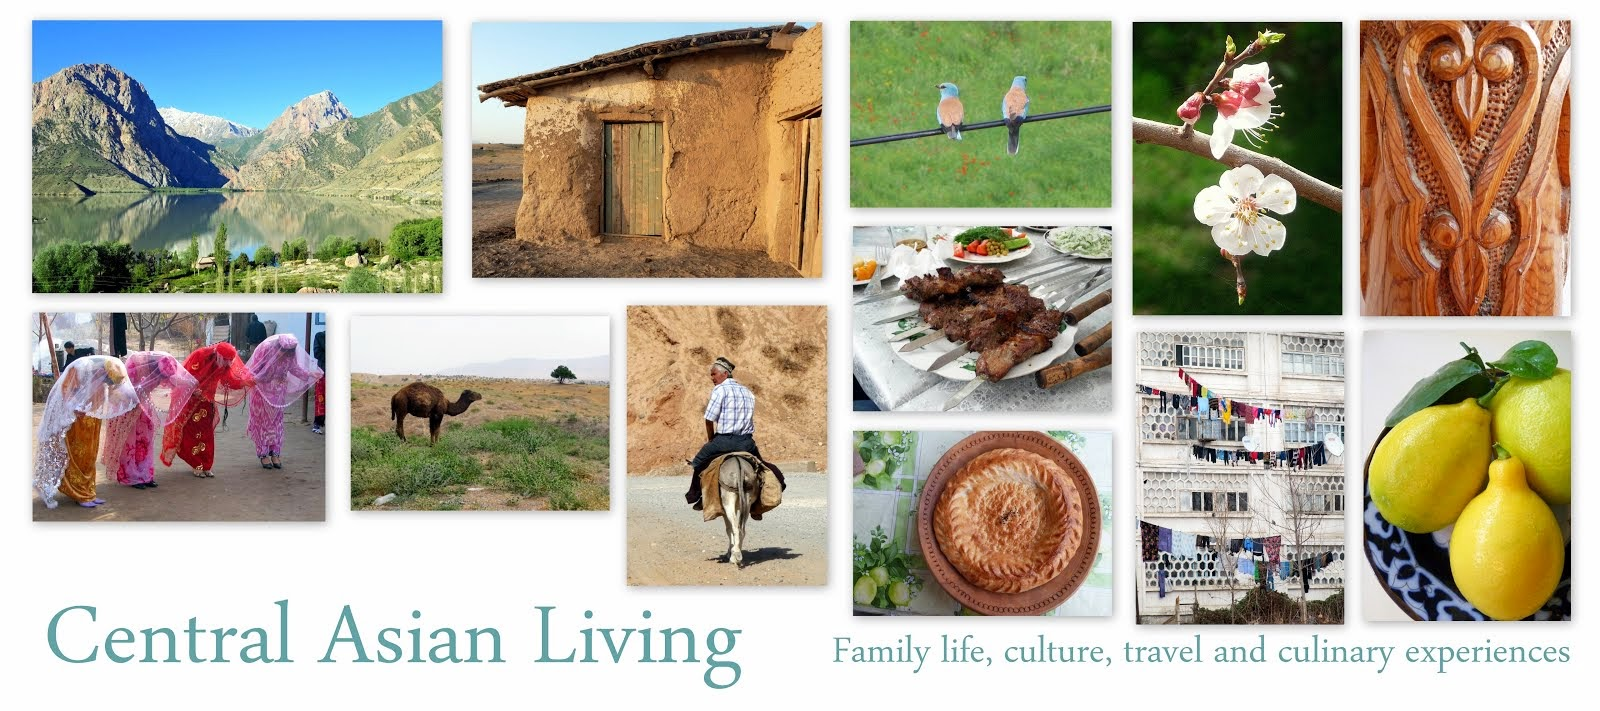 Central Asian Living